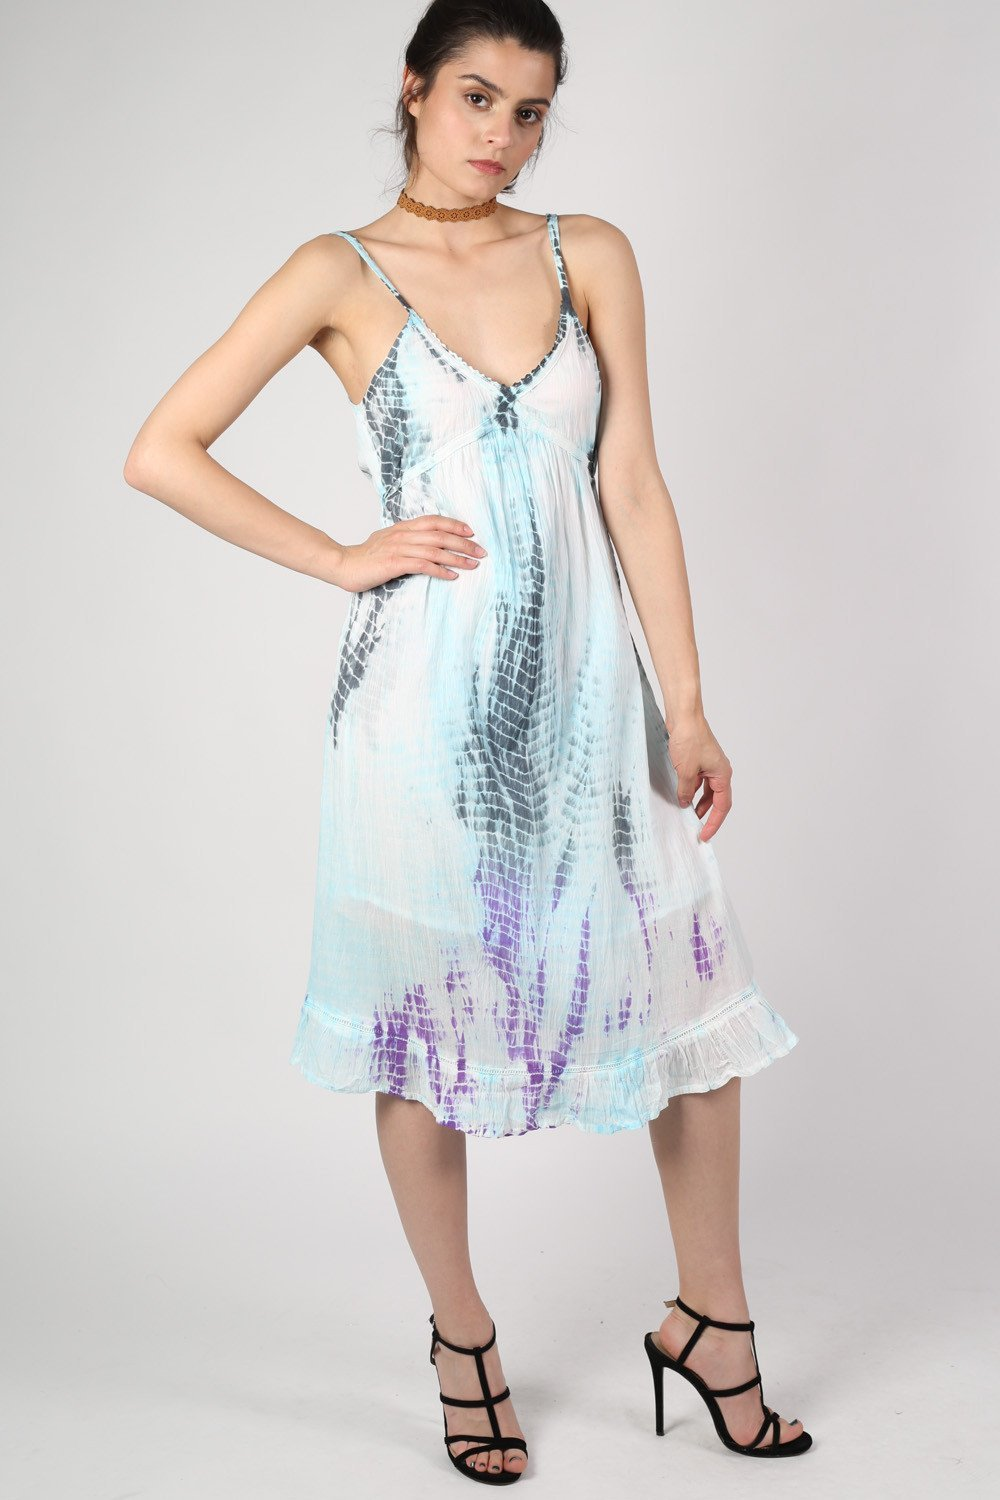 All Over Tie Dye Strappy Dress in Aqua Blue MODEL FRONT